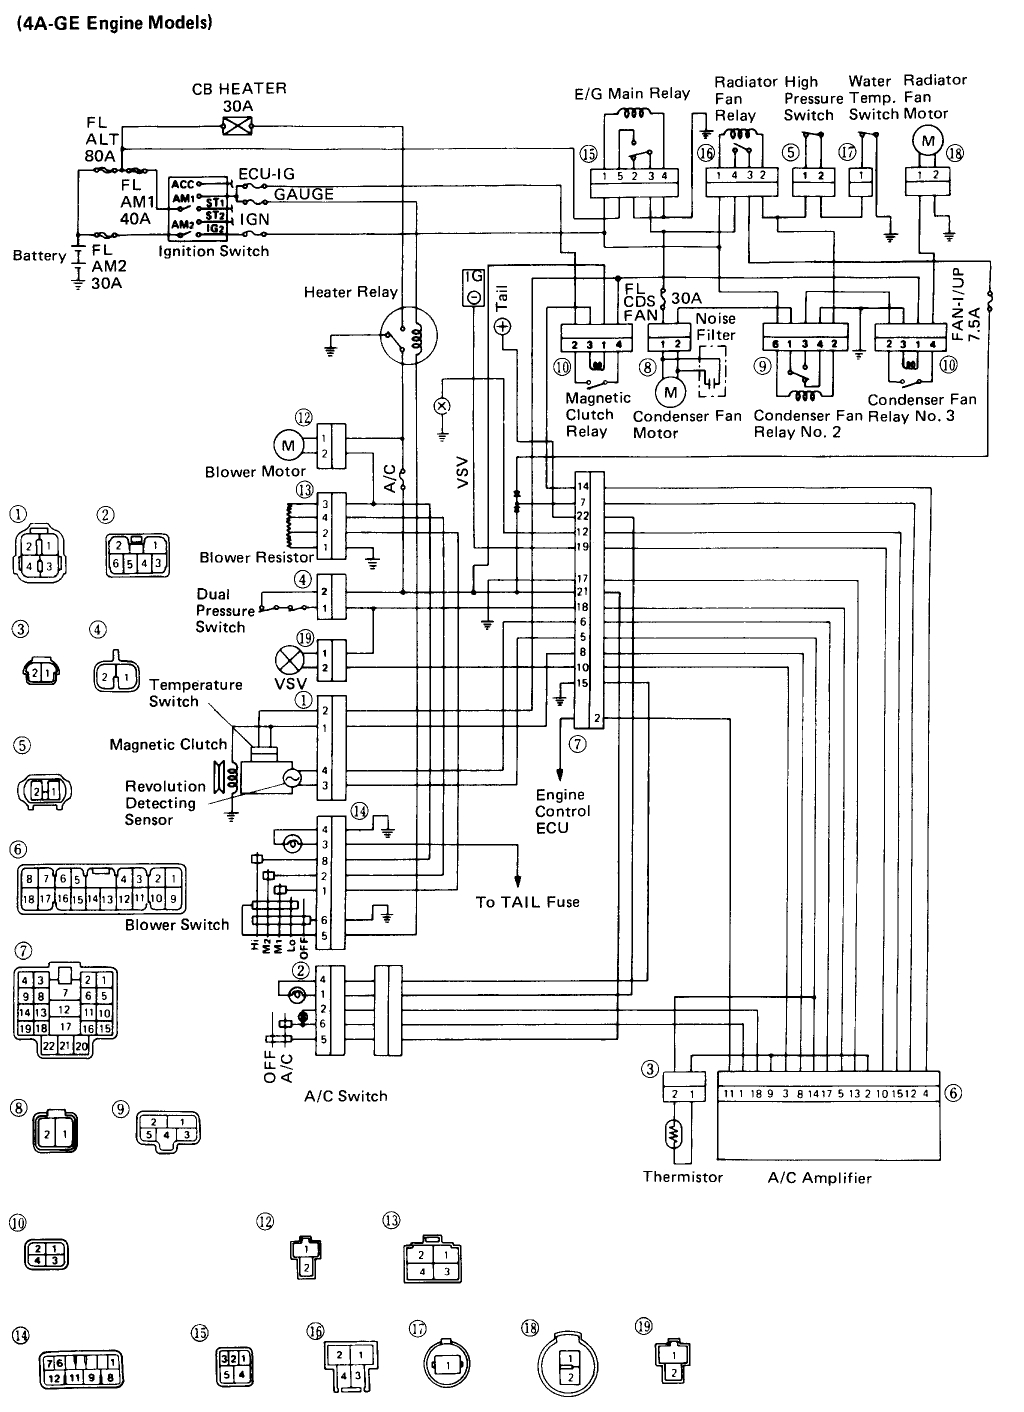 Toyota A C Compressor Wiring Diagram Will Be Thing Air Compressors Schematic For 2 Ac Clutch Relay Location I Have Searched Eight Rh 2carpros Com Single Phase Schematics